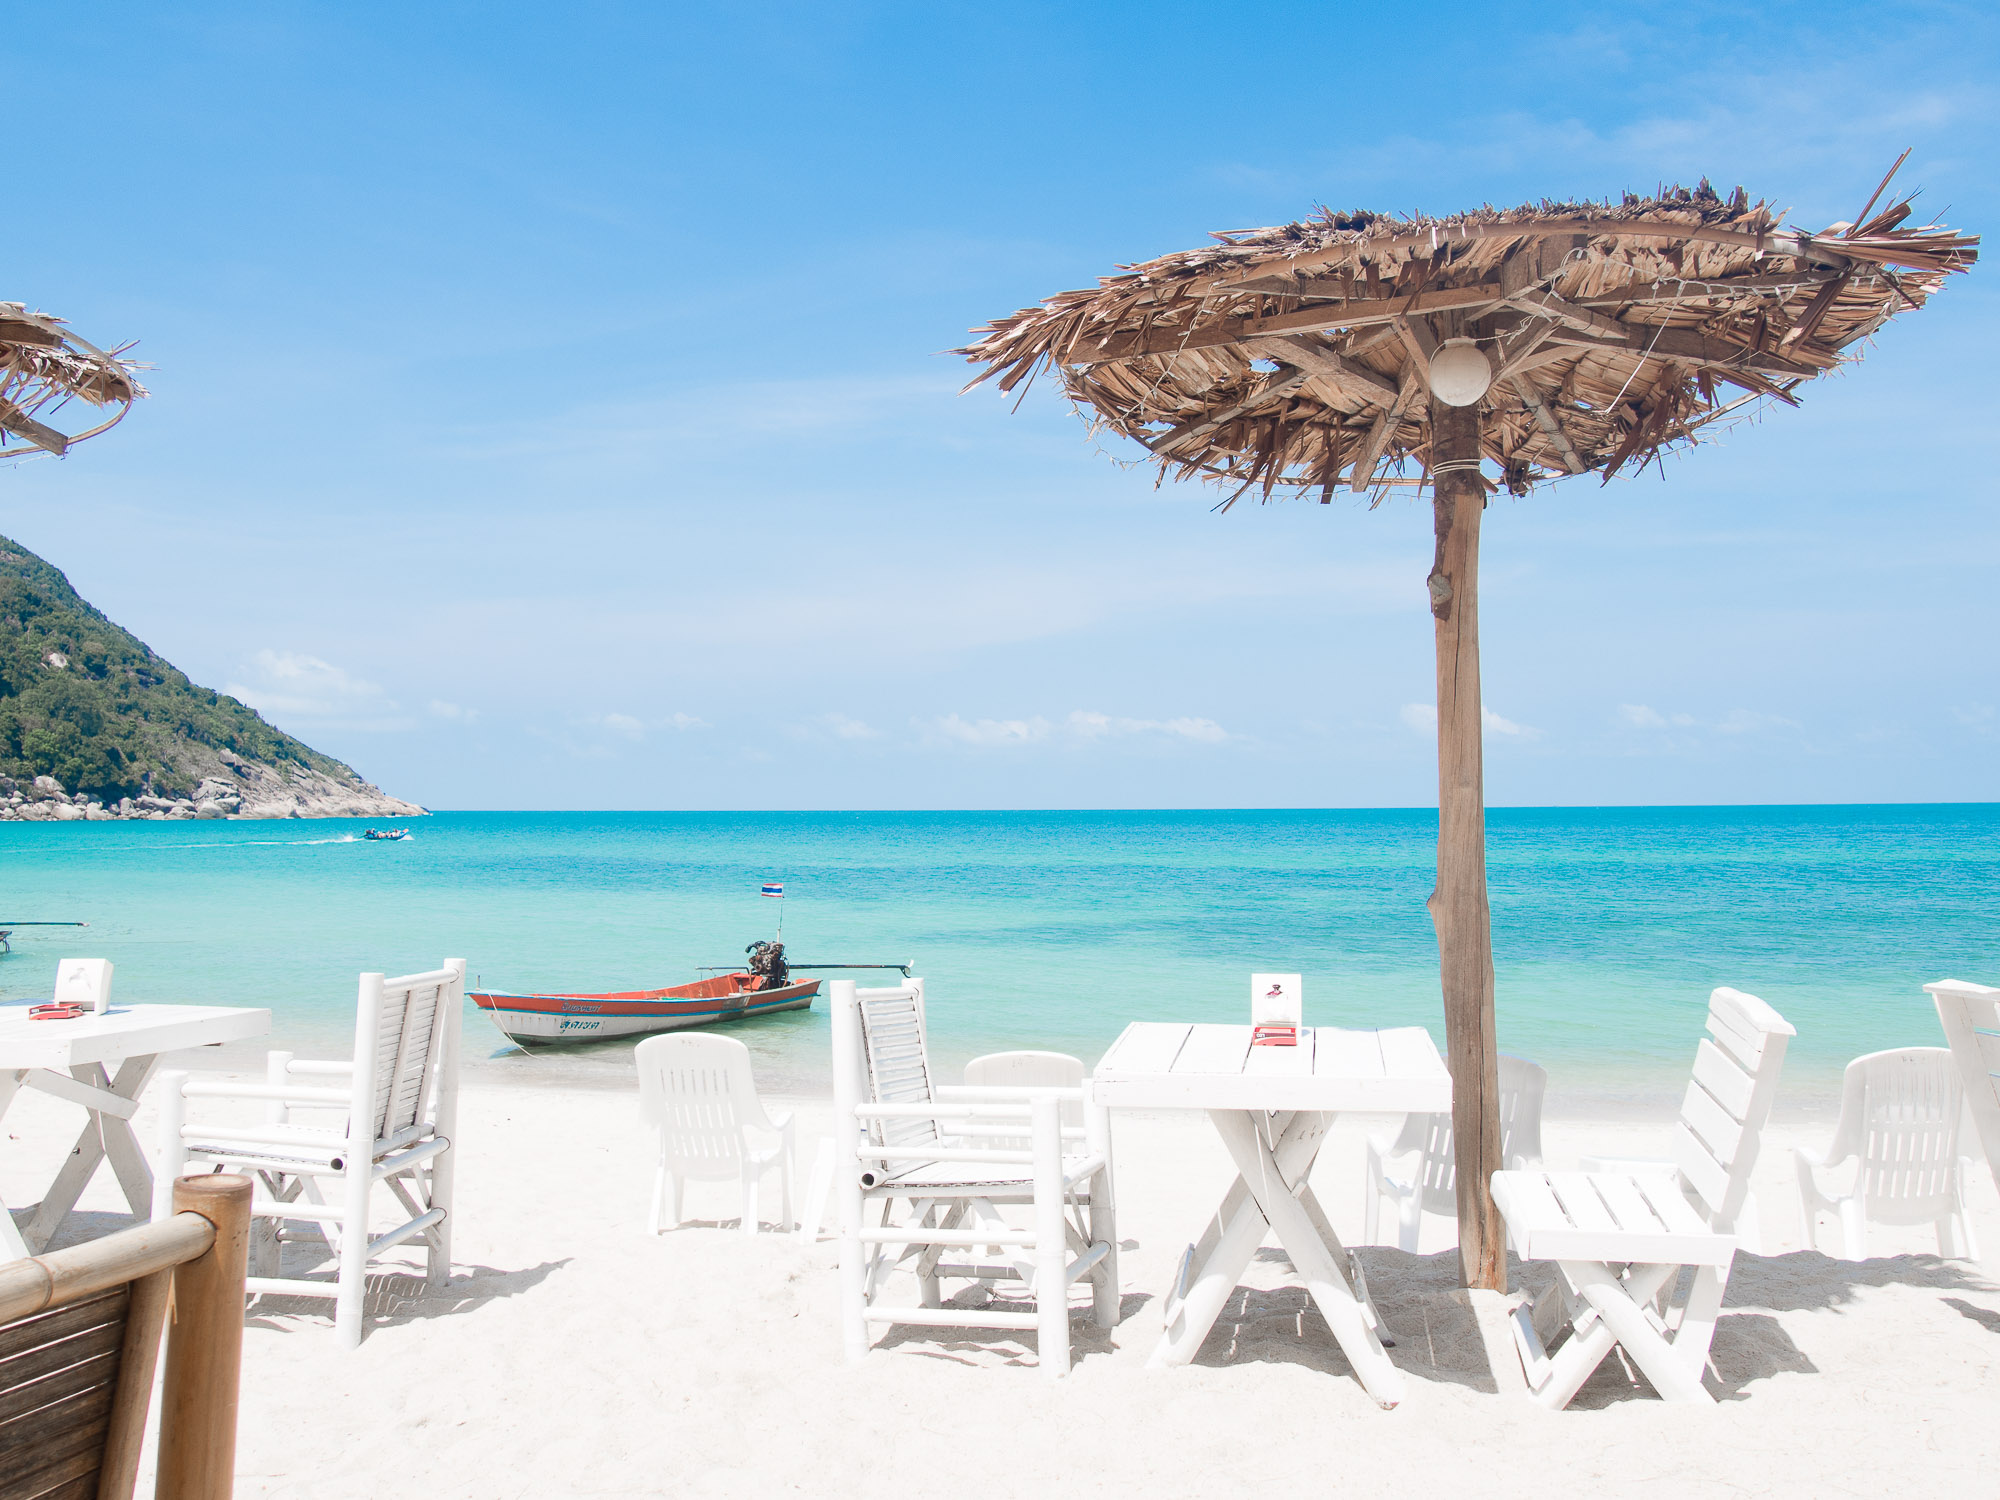 Bottle Beach Koh Phangan | Lisa Fiege